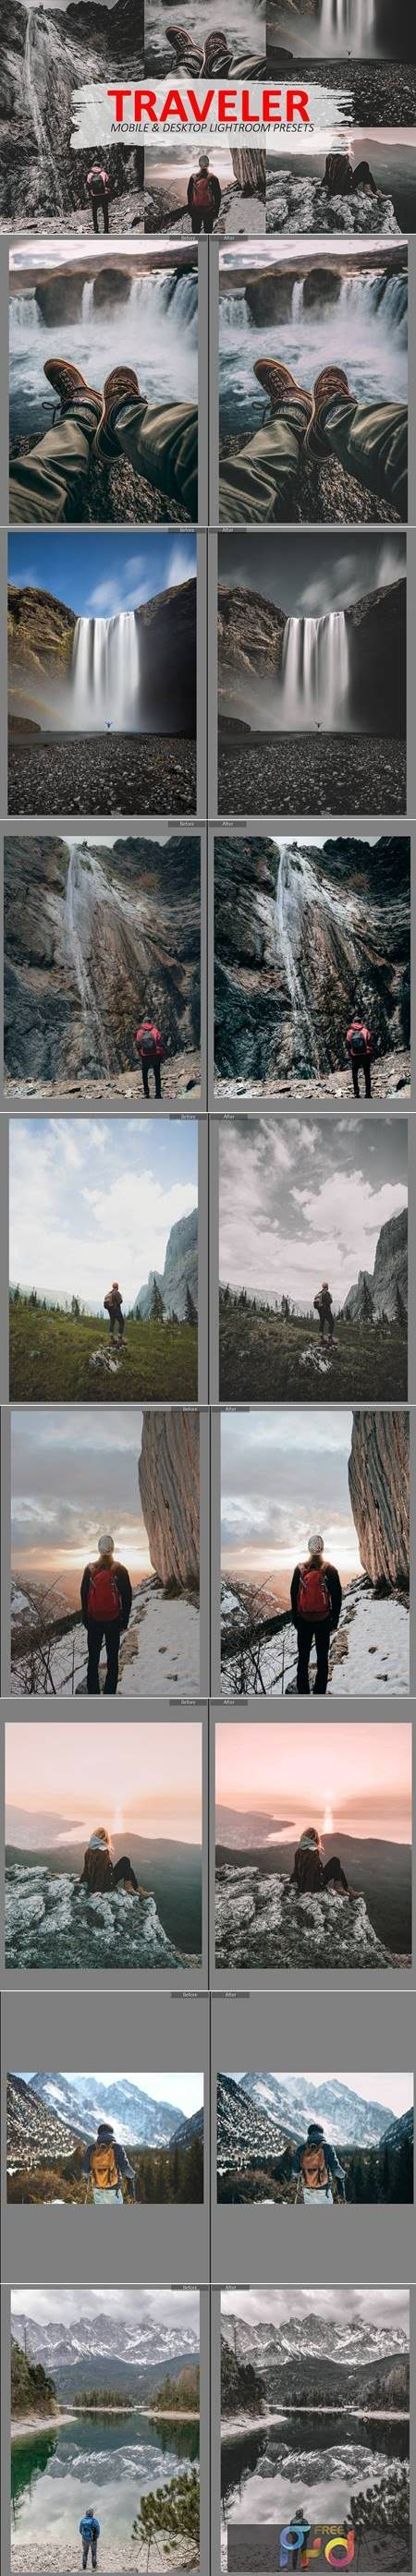 Traveler Lightroom Outdoor Presets 5605790 1